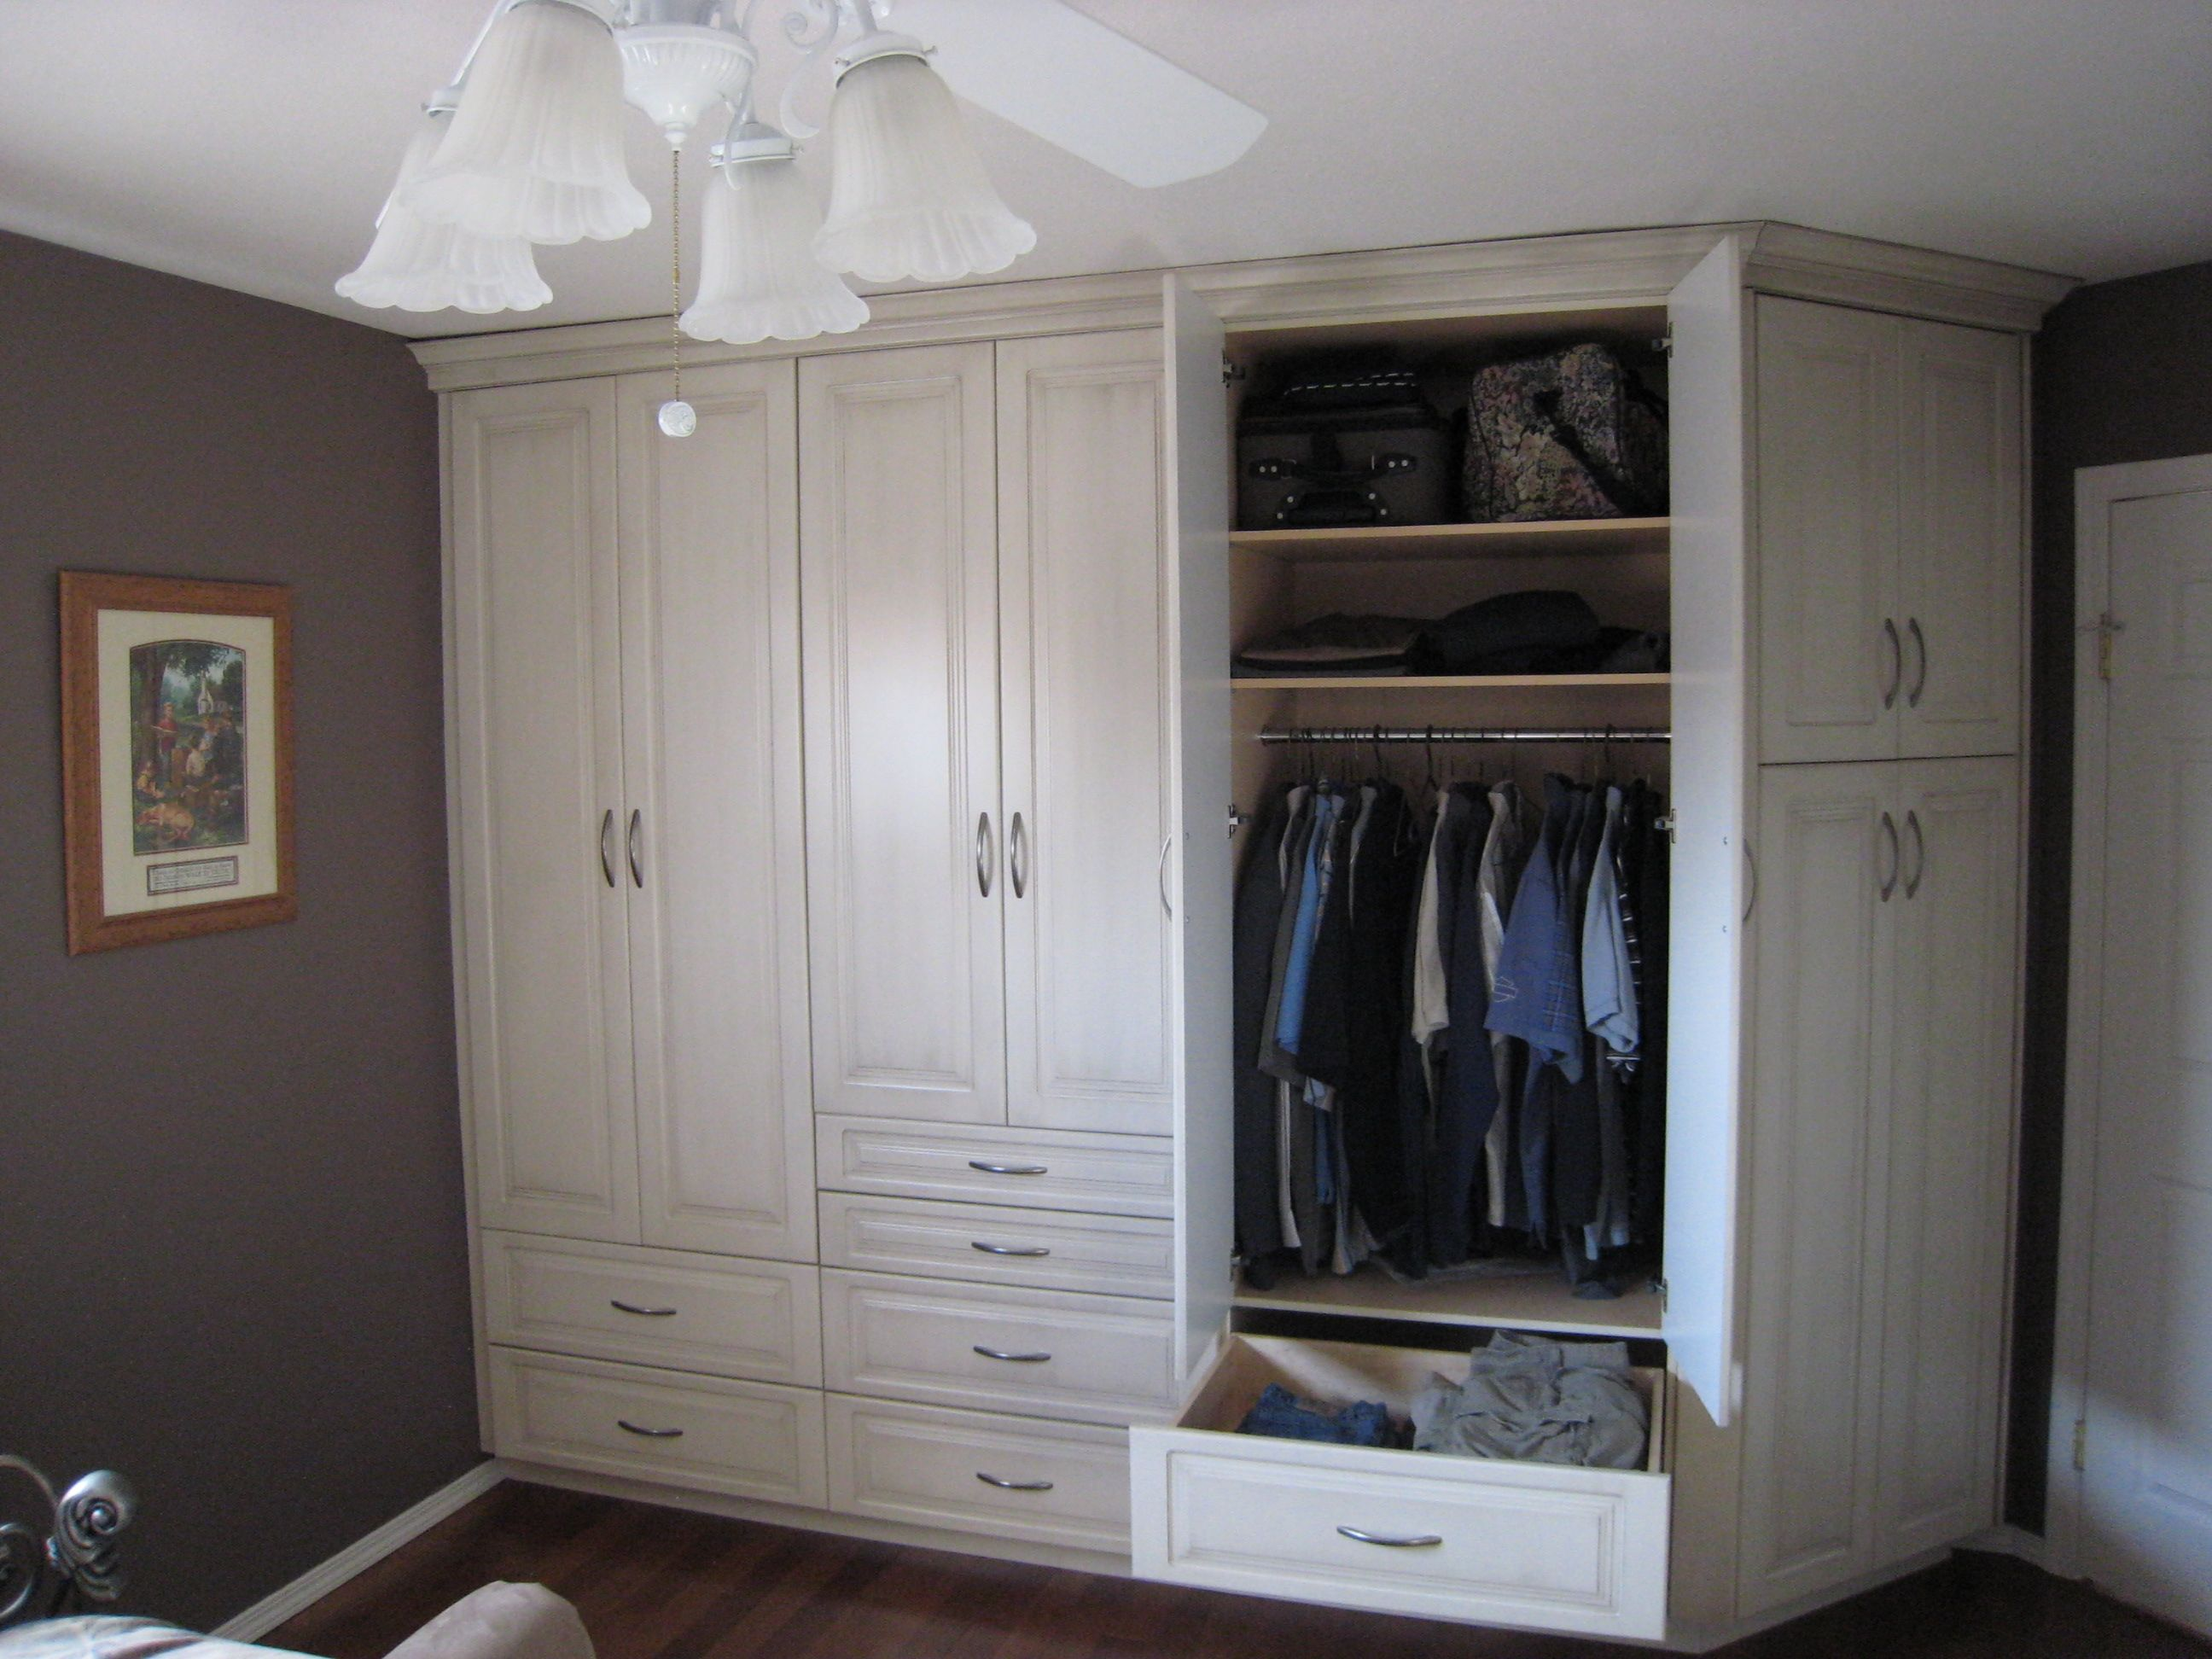 Best Bedroom Built In Closet Exactly What I Need In My Bedroom 400 x 300